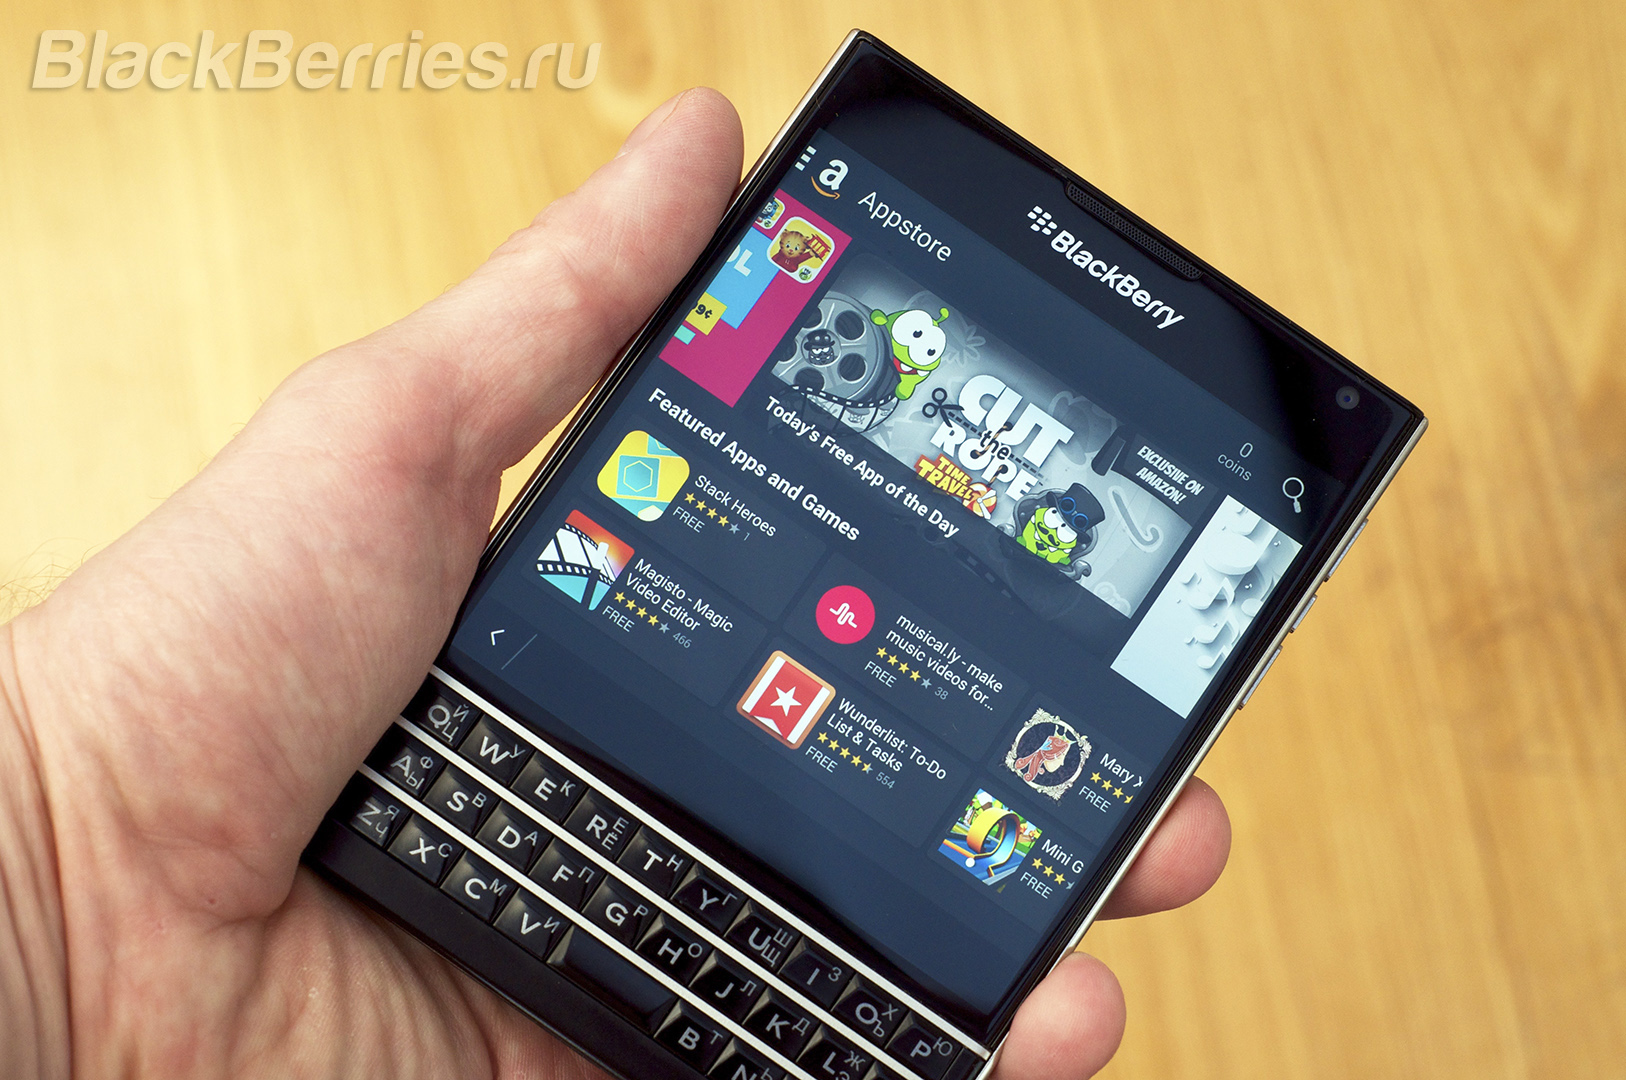 BlackBerry-Passport-Apps-25-08-3